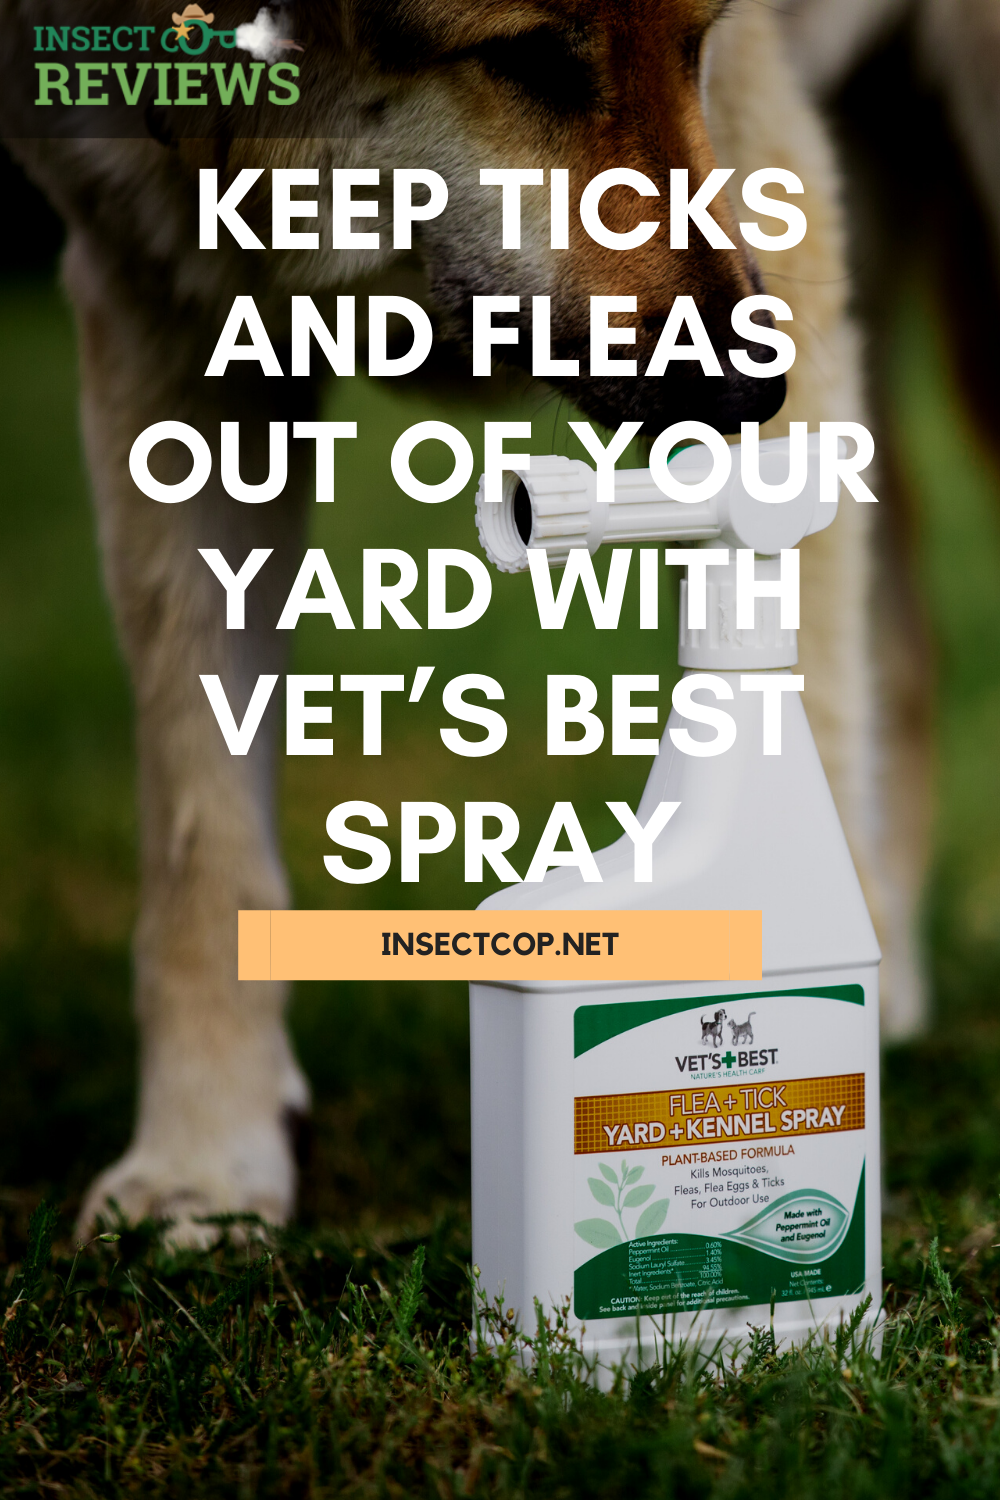 7740b77ef7e2699a5d3f209e5f8502d2 - How To Get Fleas And Ticks Out Of Your Yard